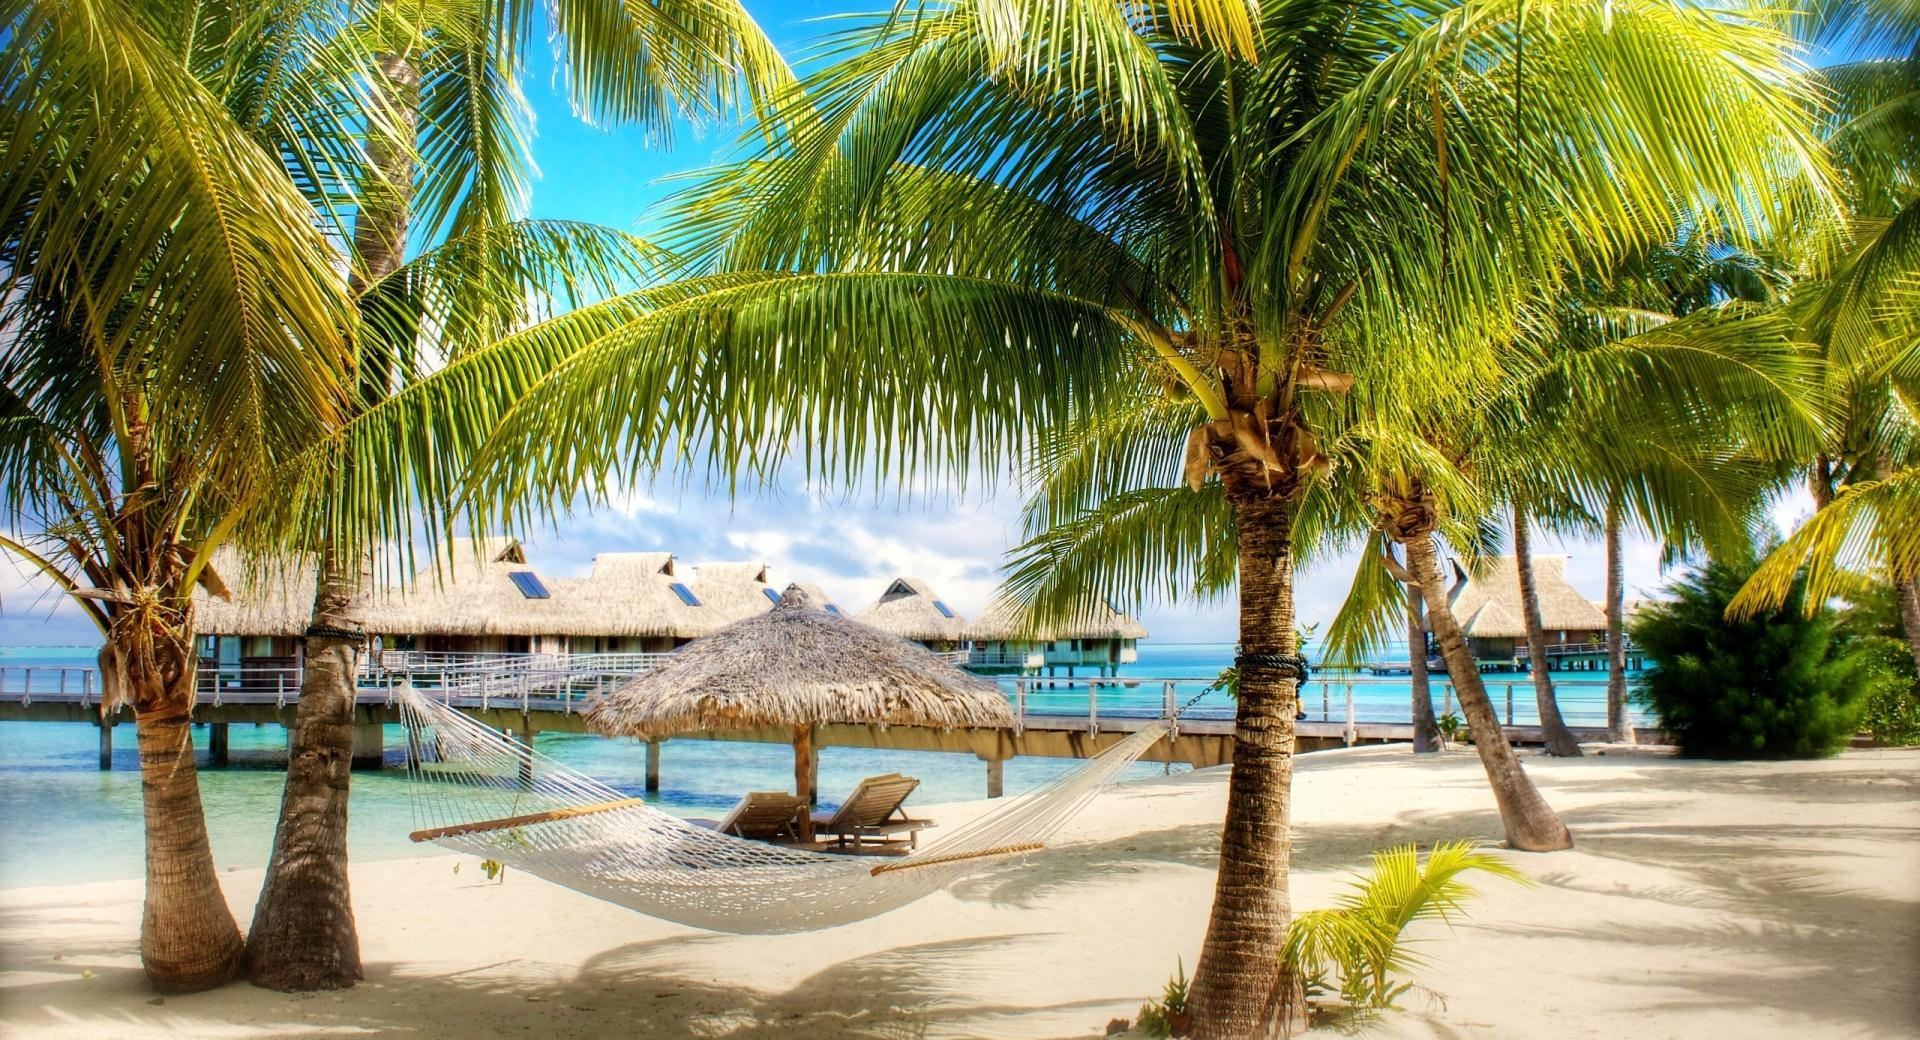 Tropical Beach Resort wallpapers HD quality